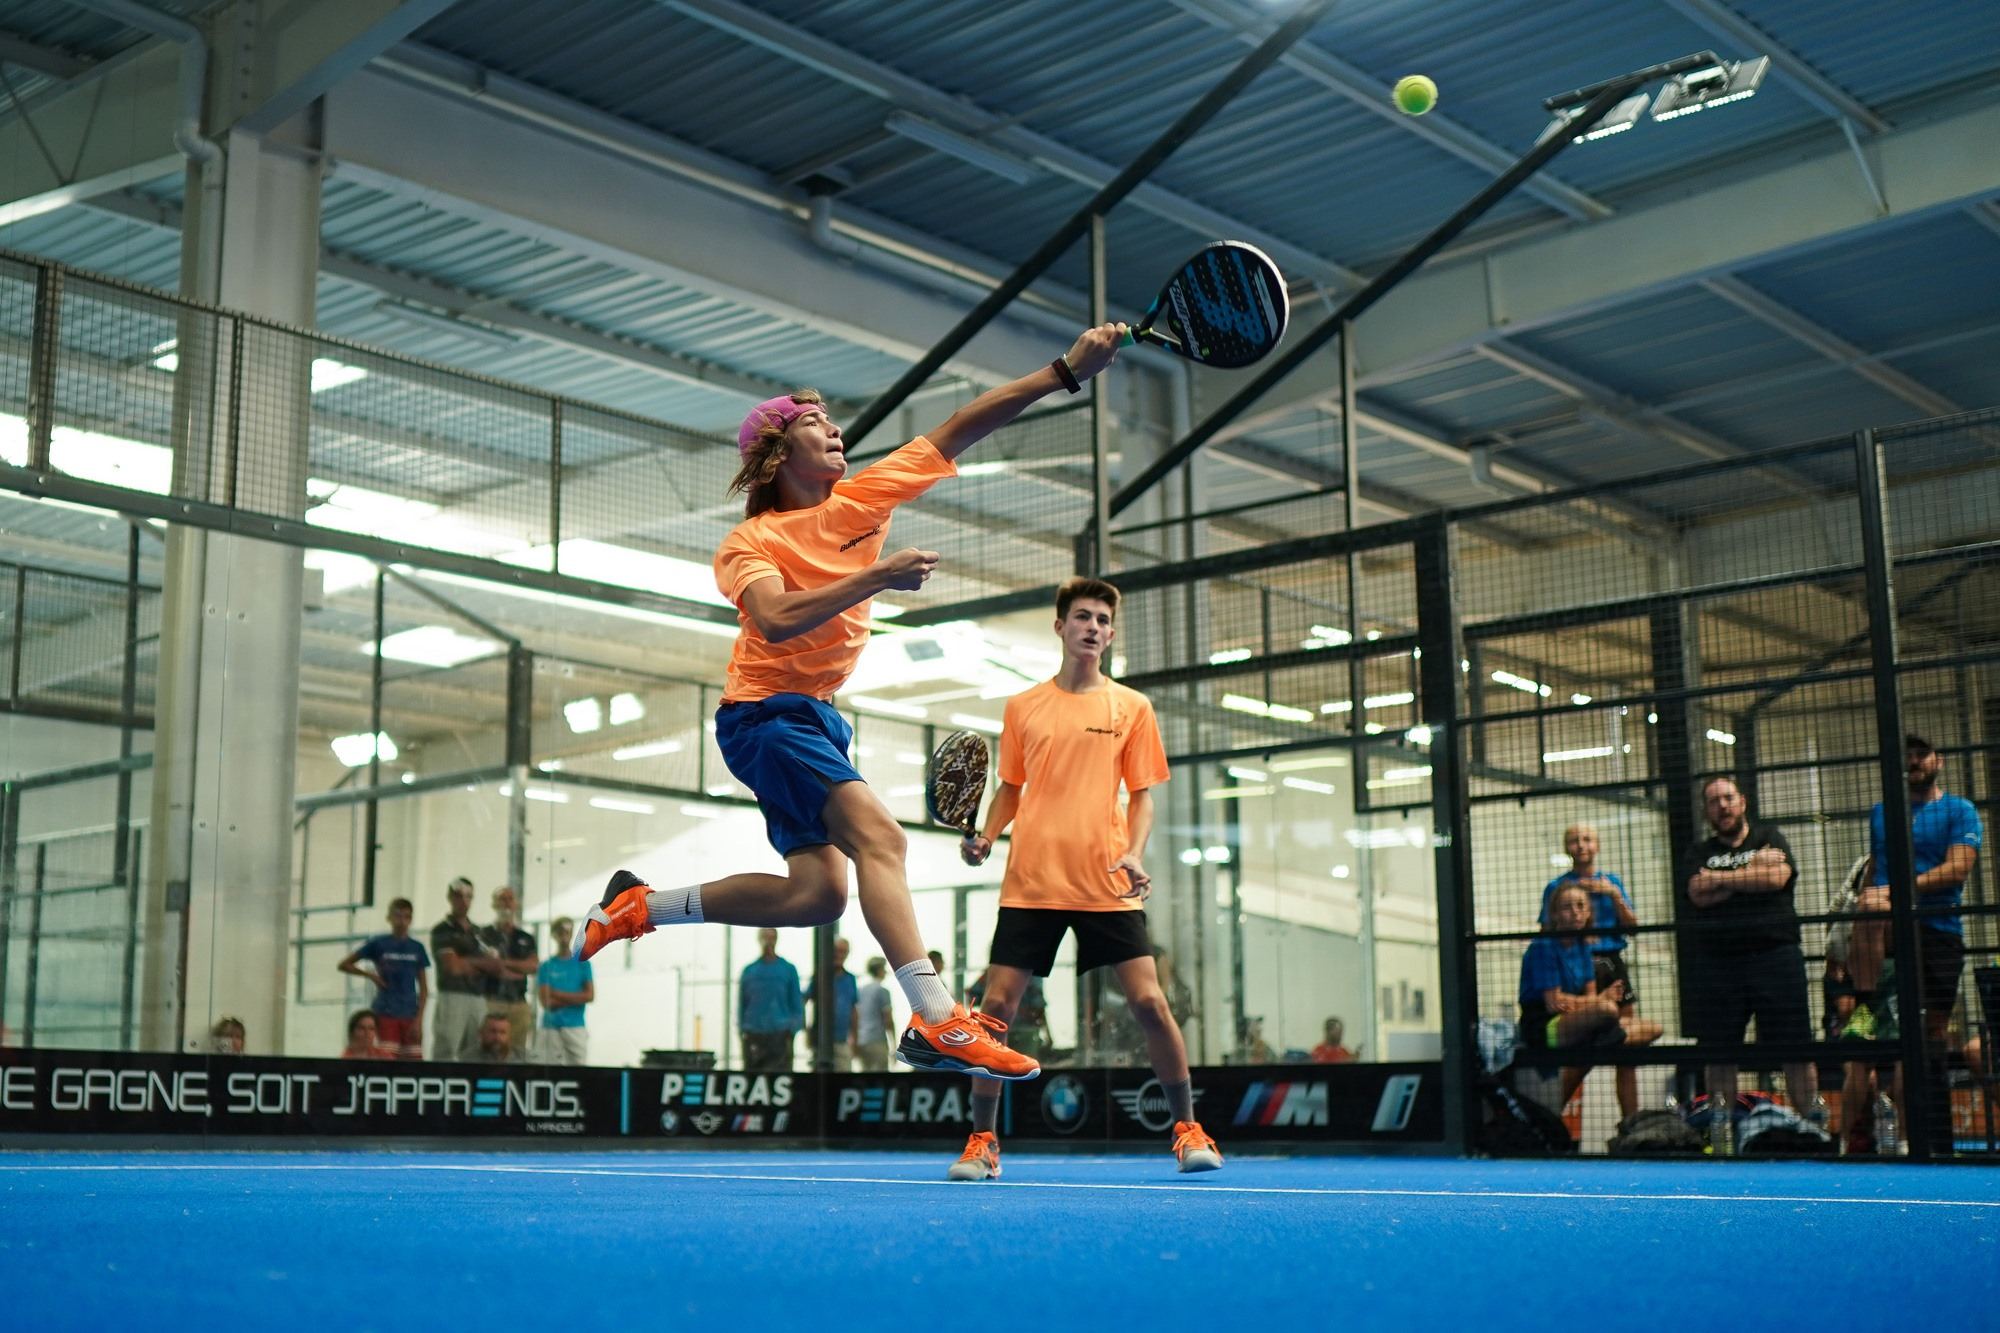 French Junior Championship padel : Hauts-de-France and Occitanie in history